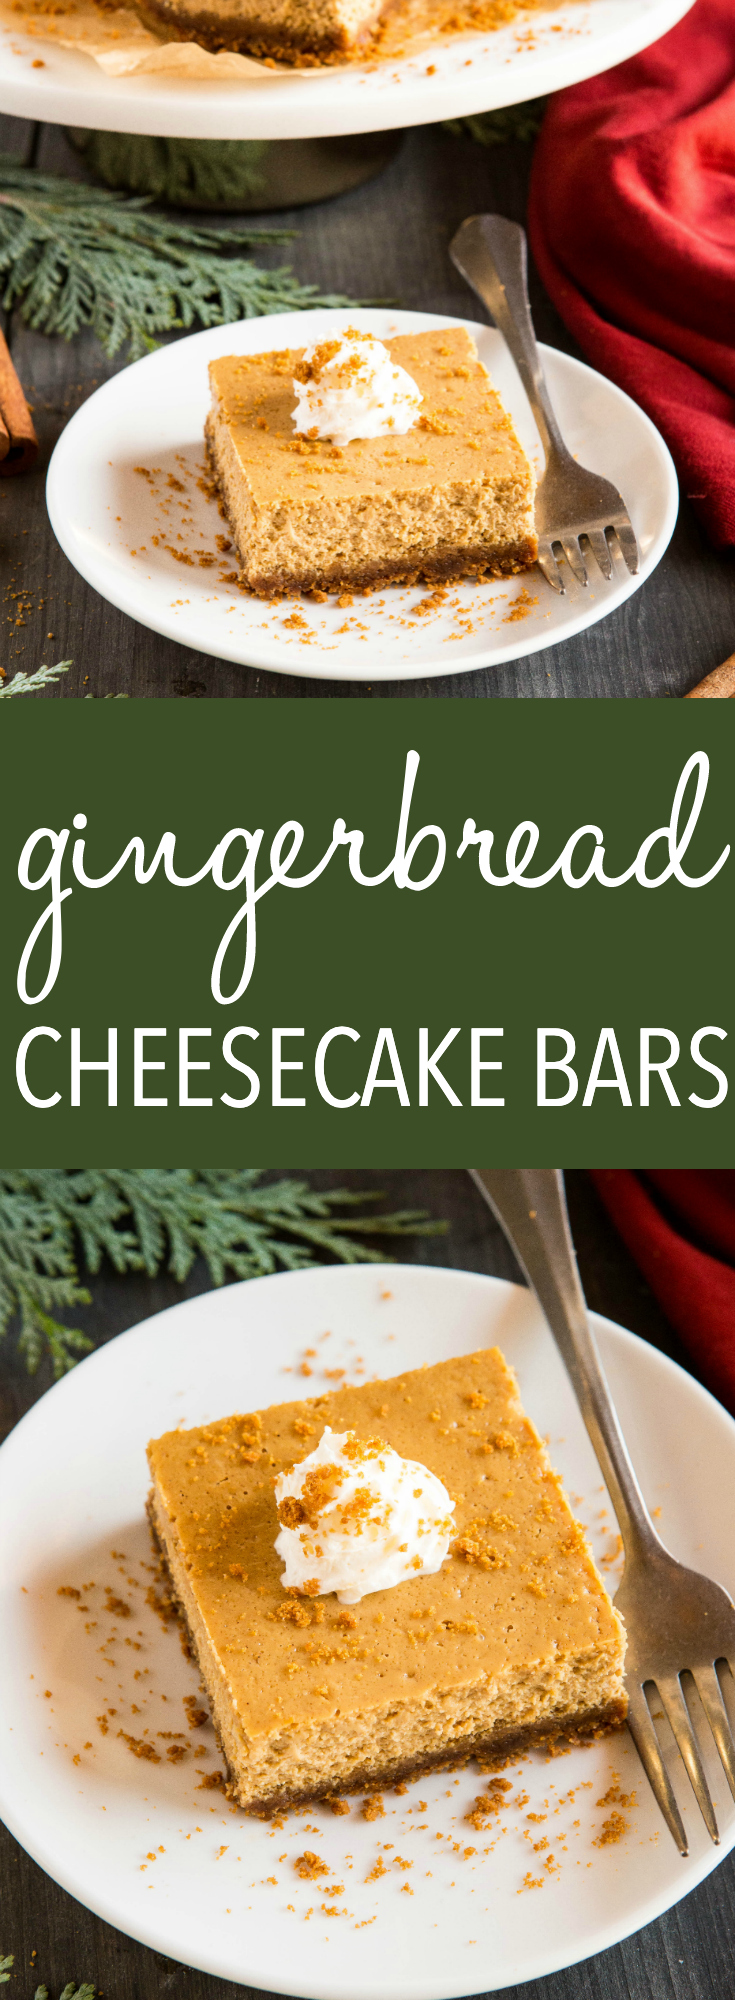 gingerbread cheesecake bars pinterest